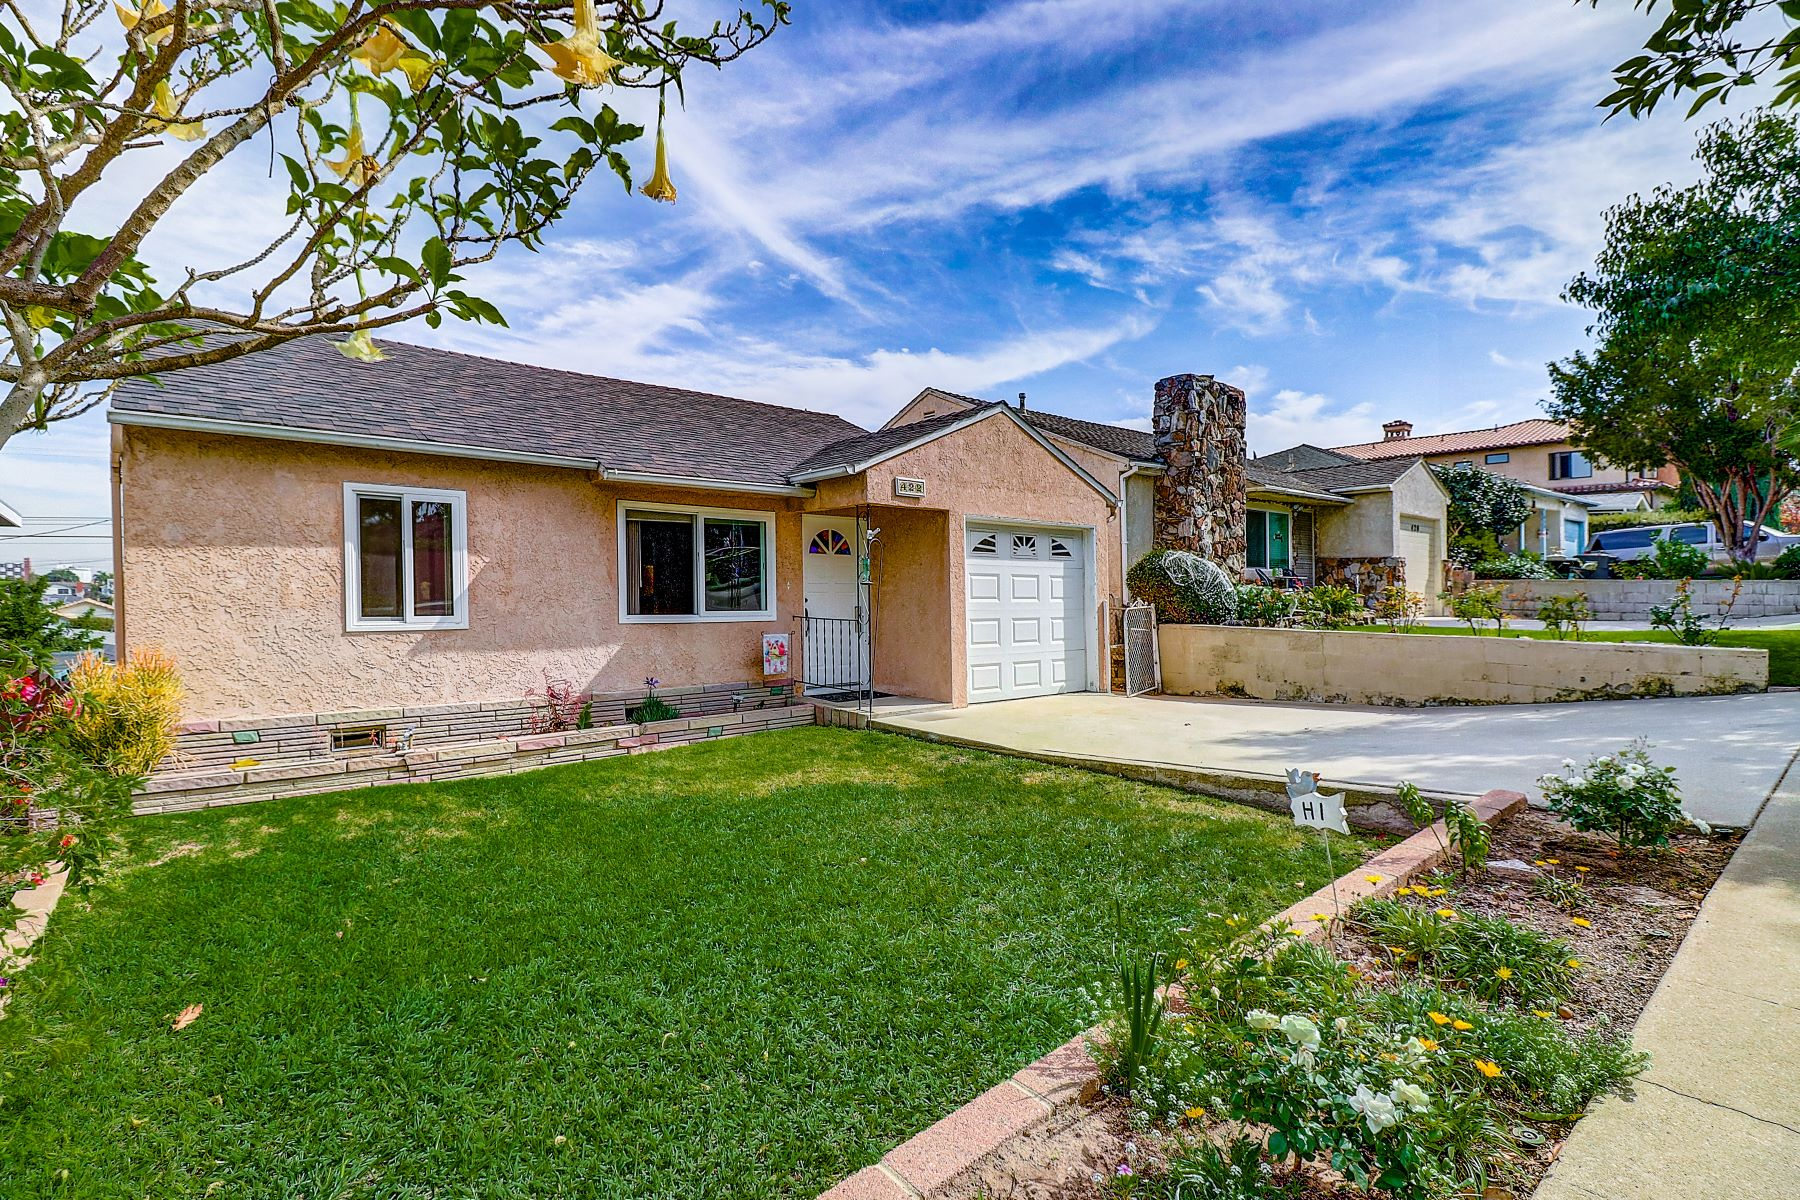 Single Family Homes for Sale at 422 Maryland Street, El Segundo, CA 90245 422 Maryland Street El Segundo, California 90245 United States